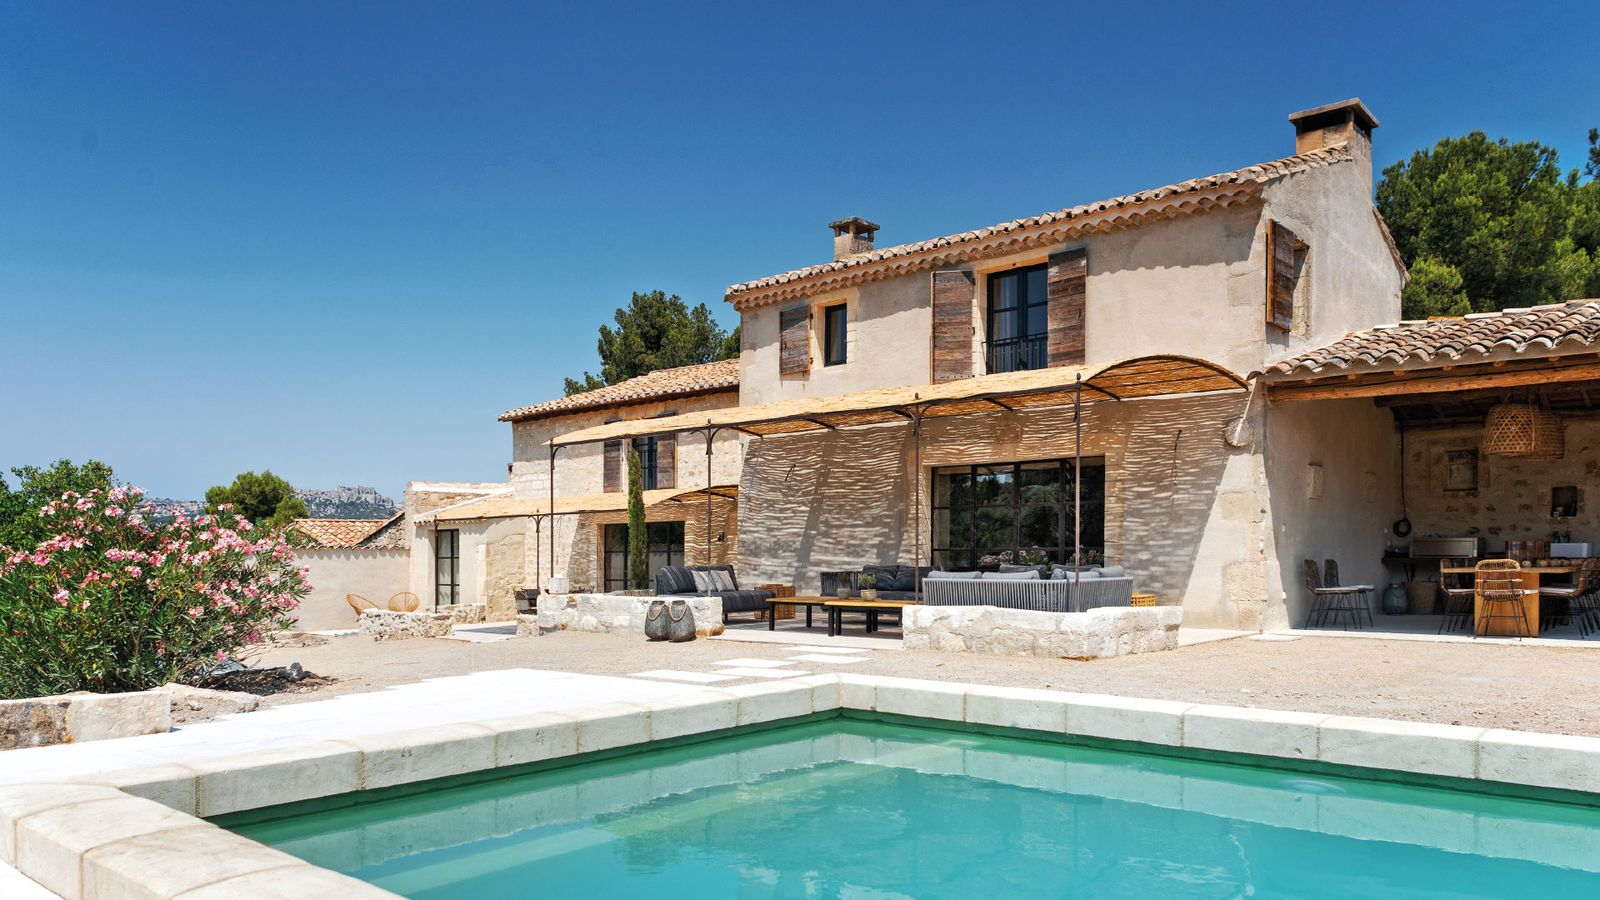 Luxury Villa for rent in France Provence vacations private swimming pool